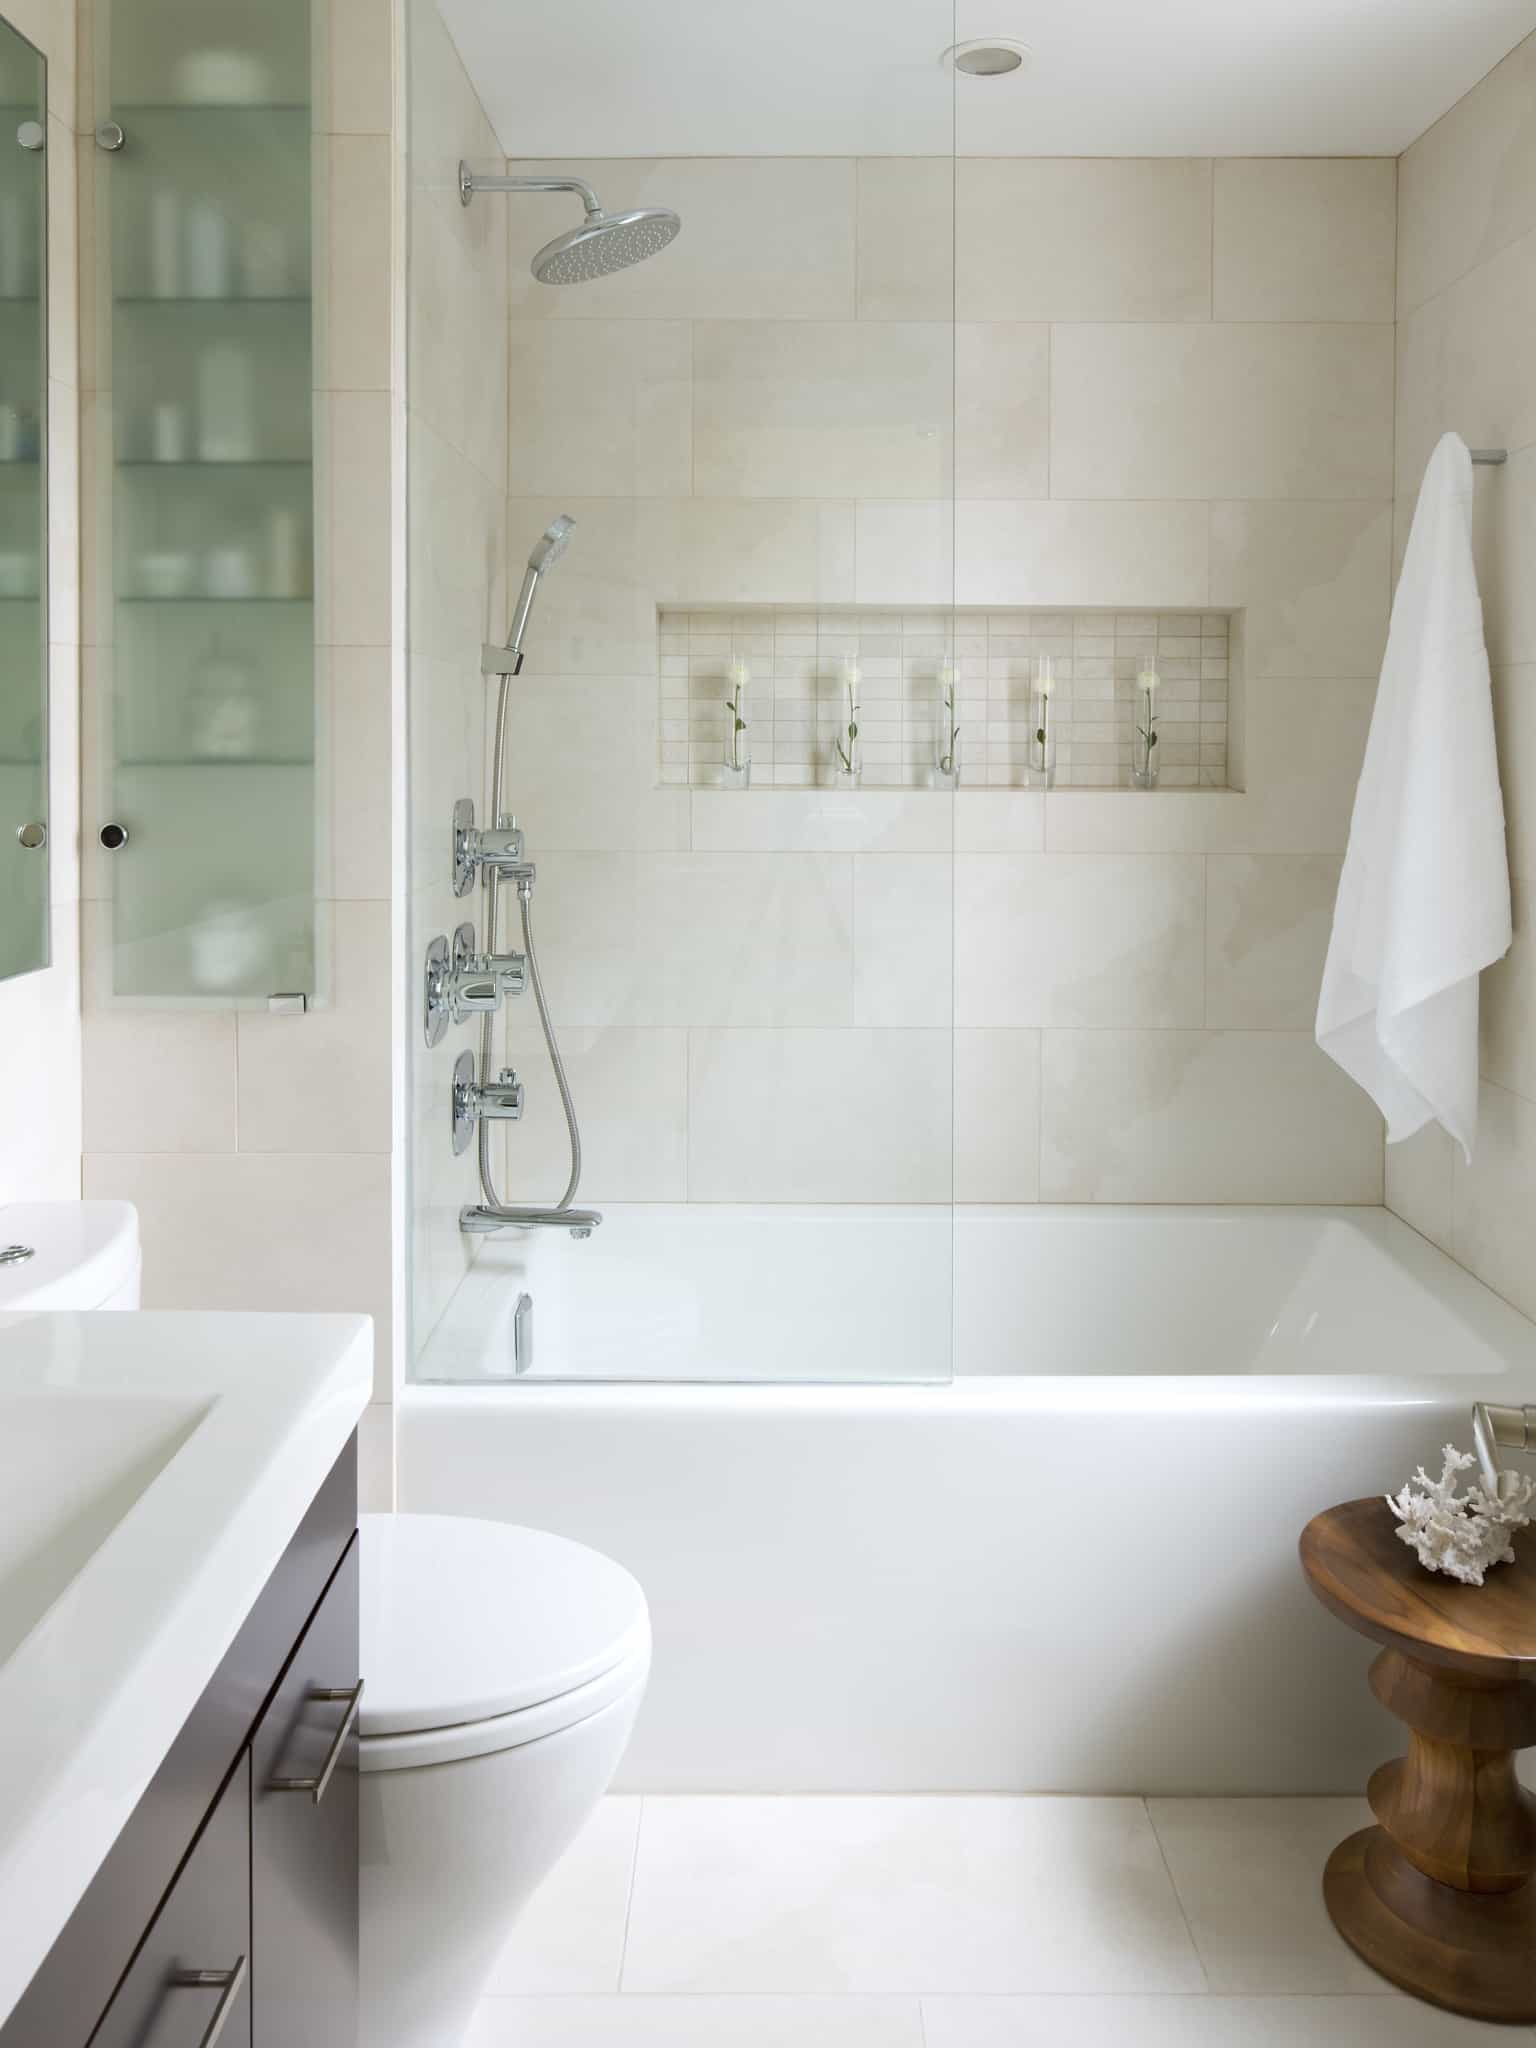 Chic White Bathroom With Sleek Cabinets (Image 11 of 29)